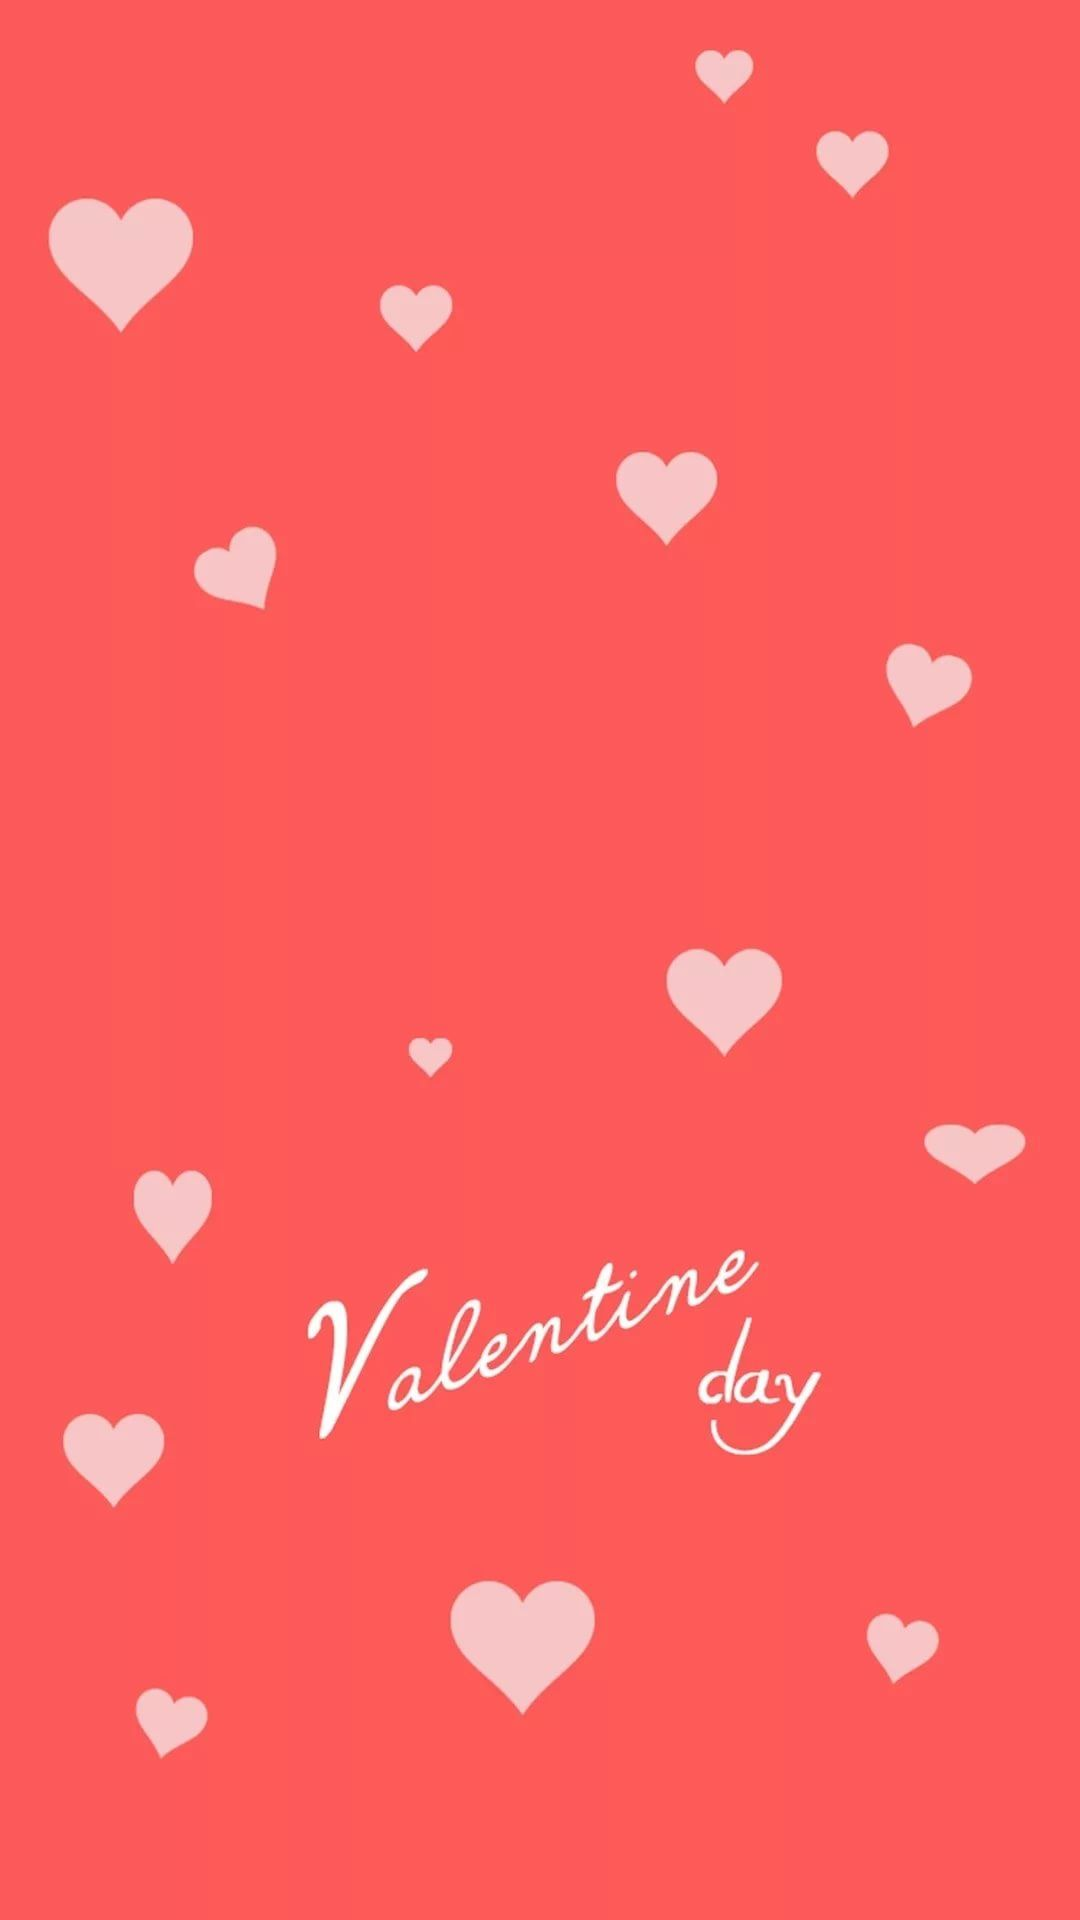 19 Valentine's Day iPhone Wallpapers